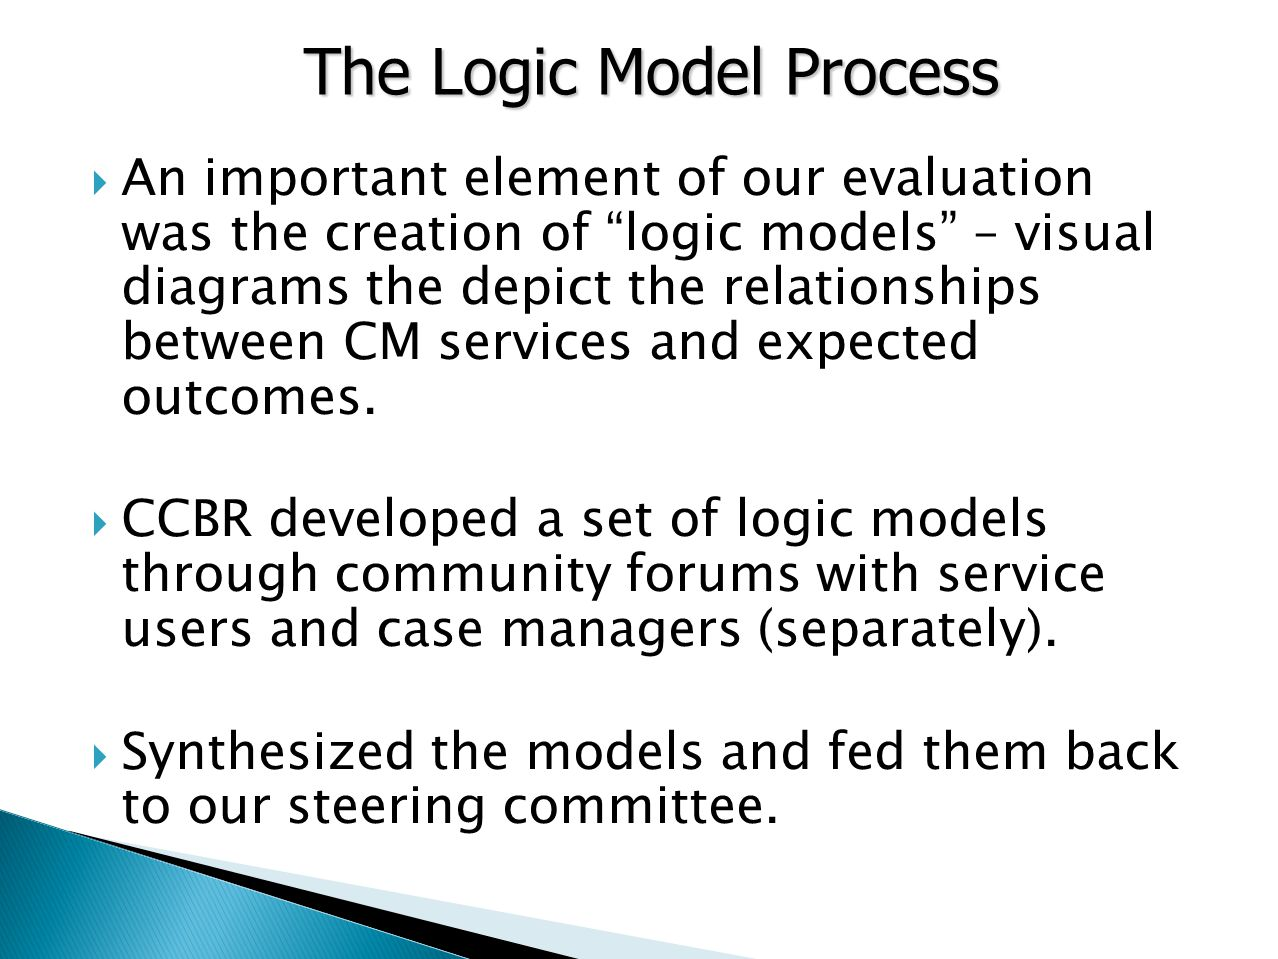  An important element of our evaluation was the creation of logic models – visual diagrams the depict the relationships between CM services and expected outcomes.